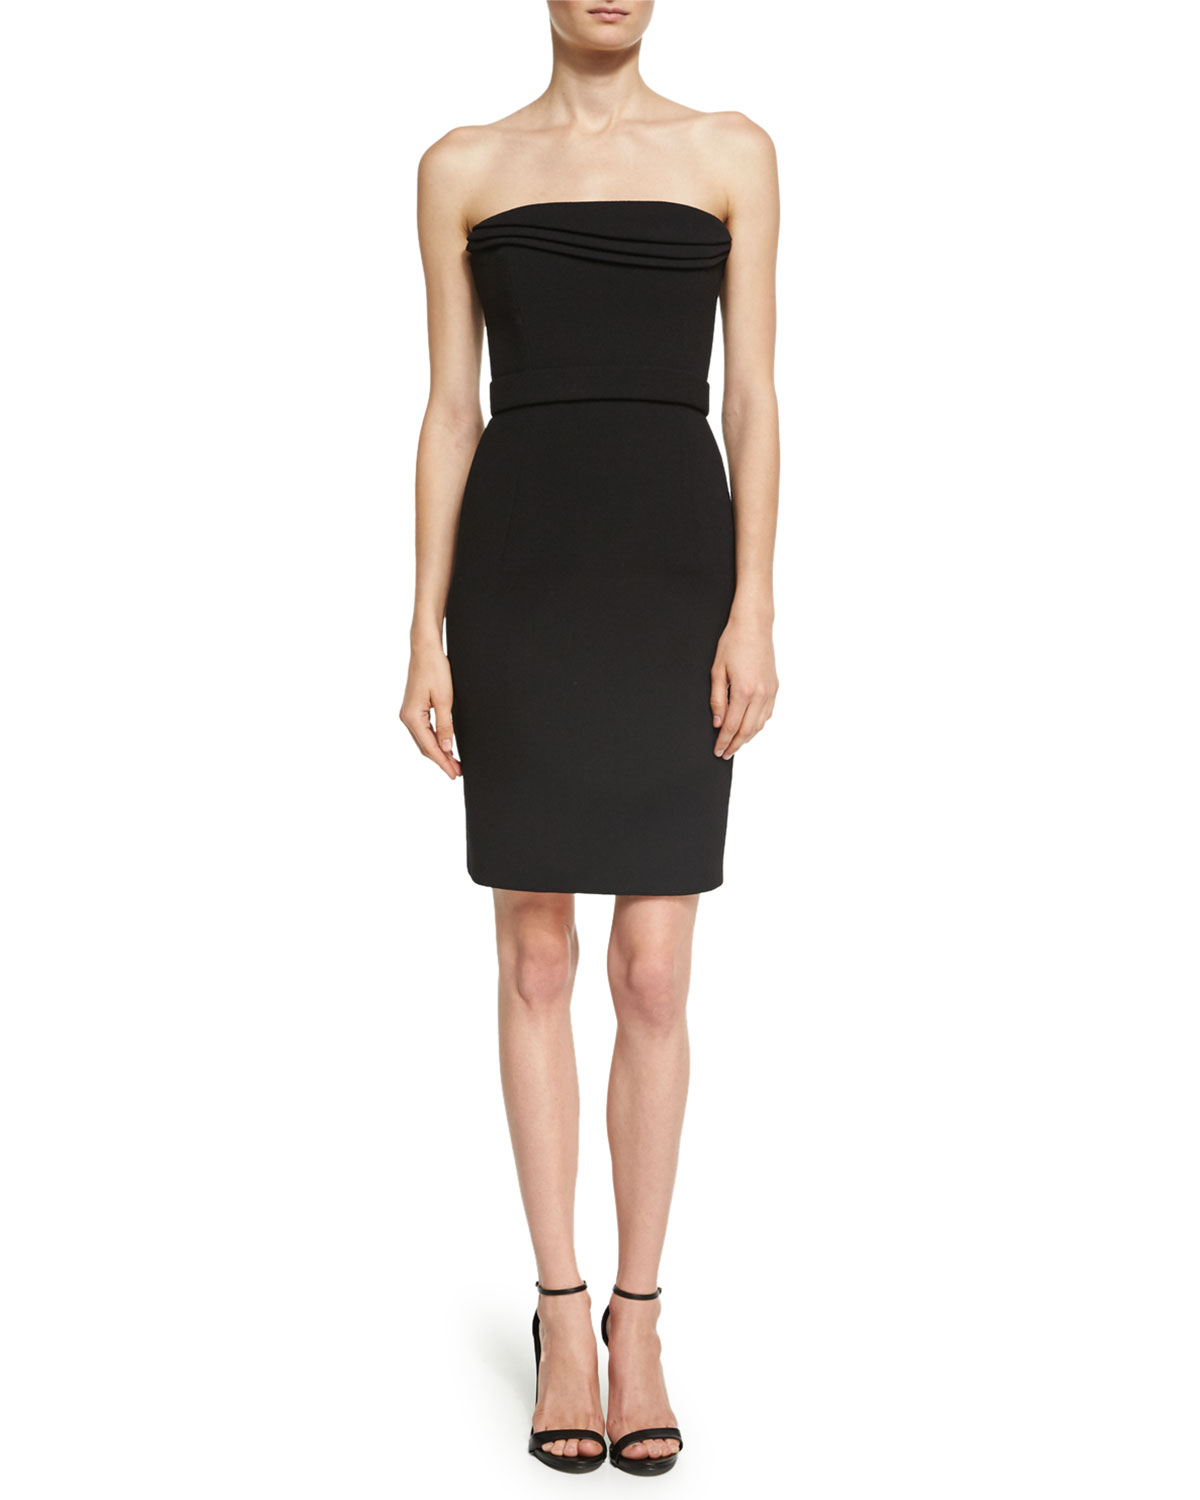 Strapless Petal-Bodice Cocktail Dress, Black